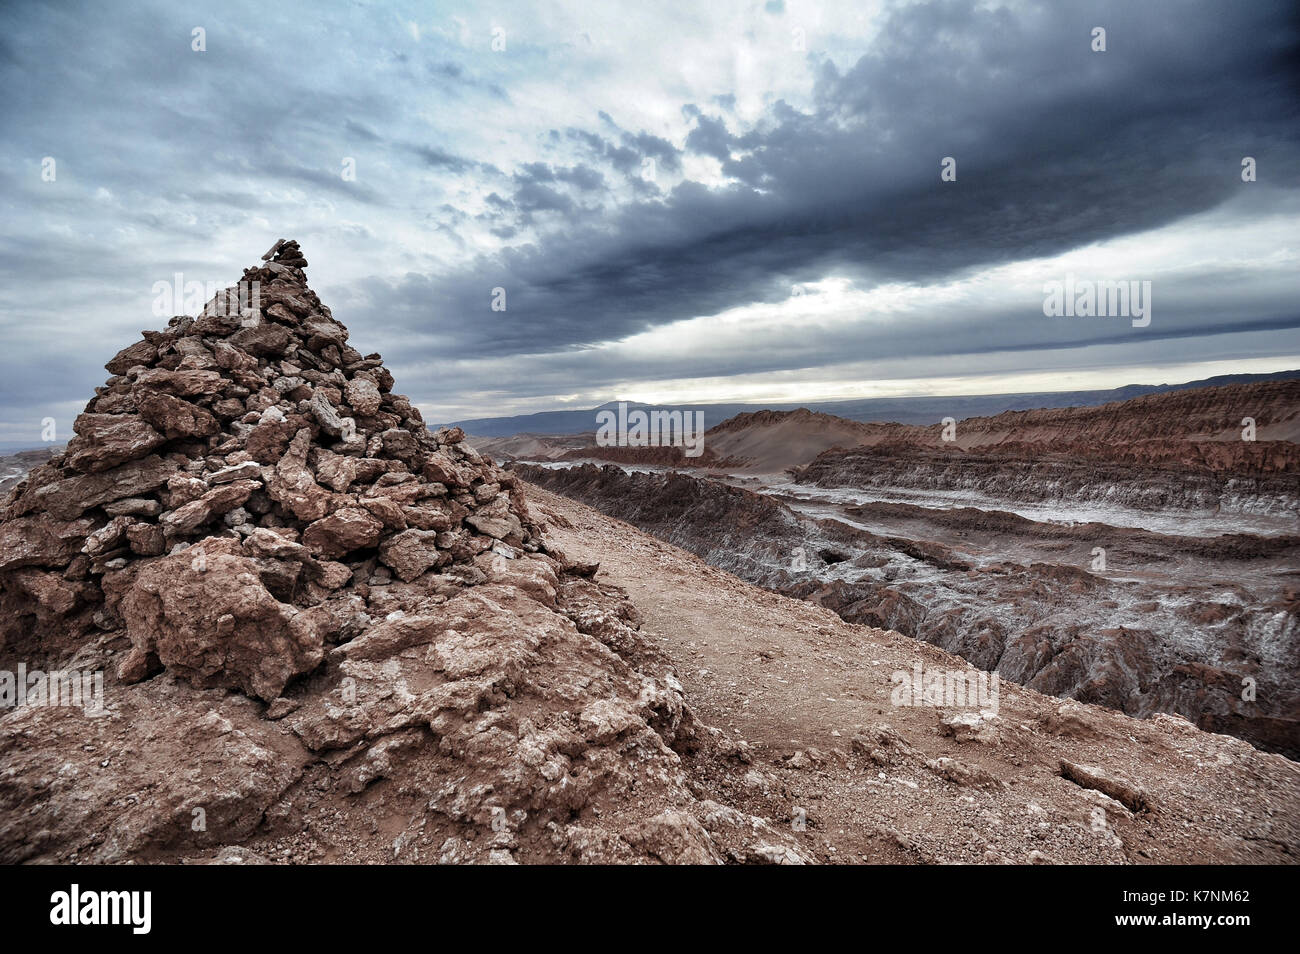 A human-made pile of stones in the Valle de la Luna, in the Atacama region, Northern Chile - Stock Image